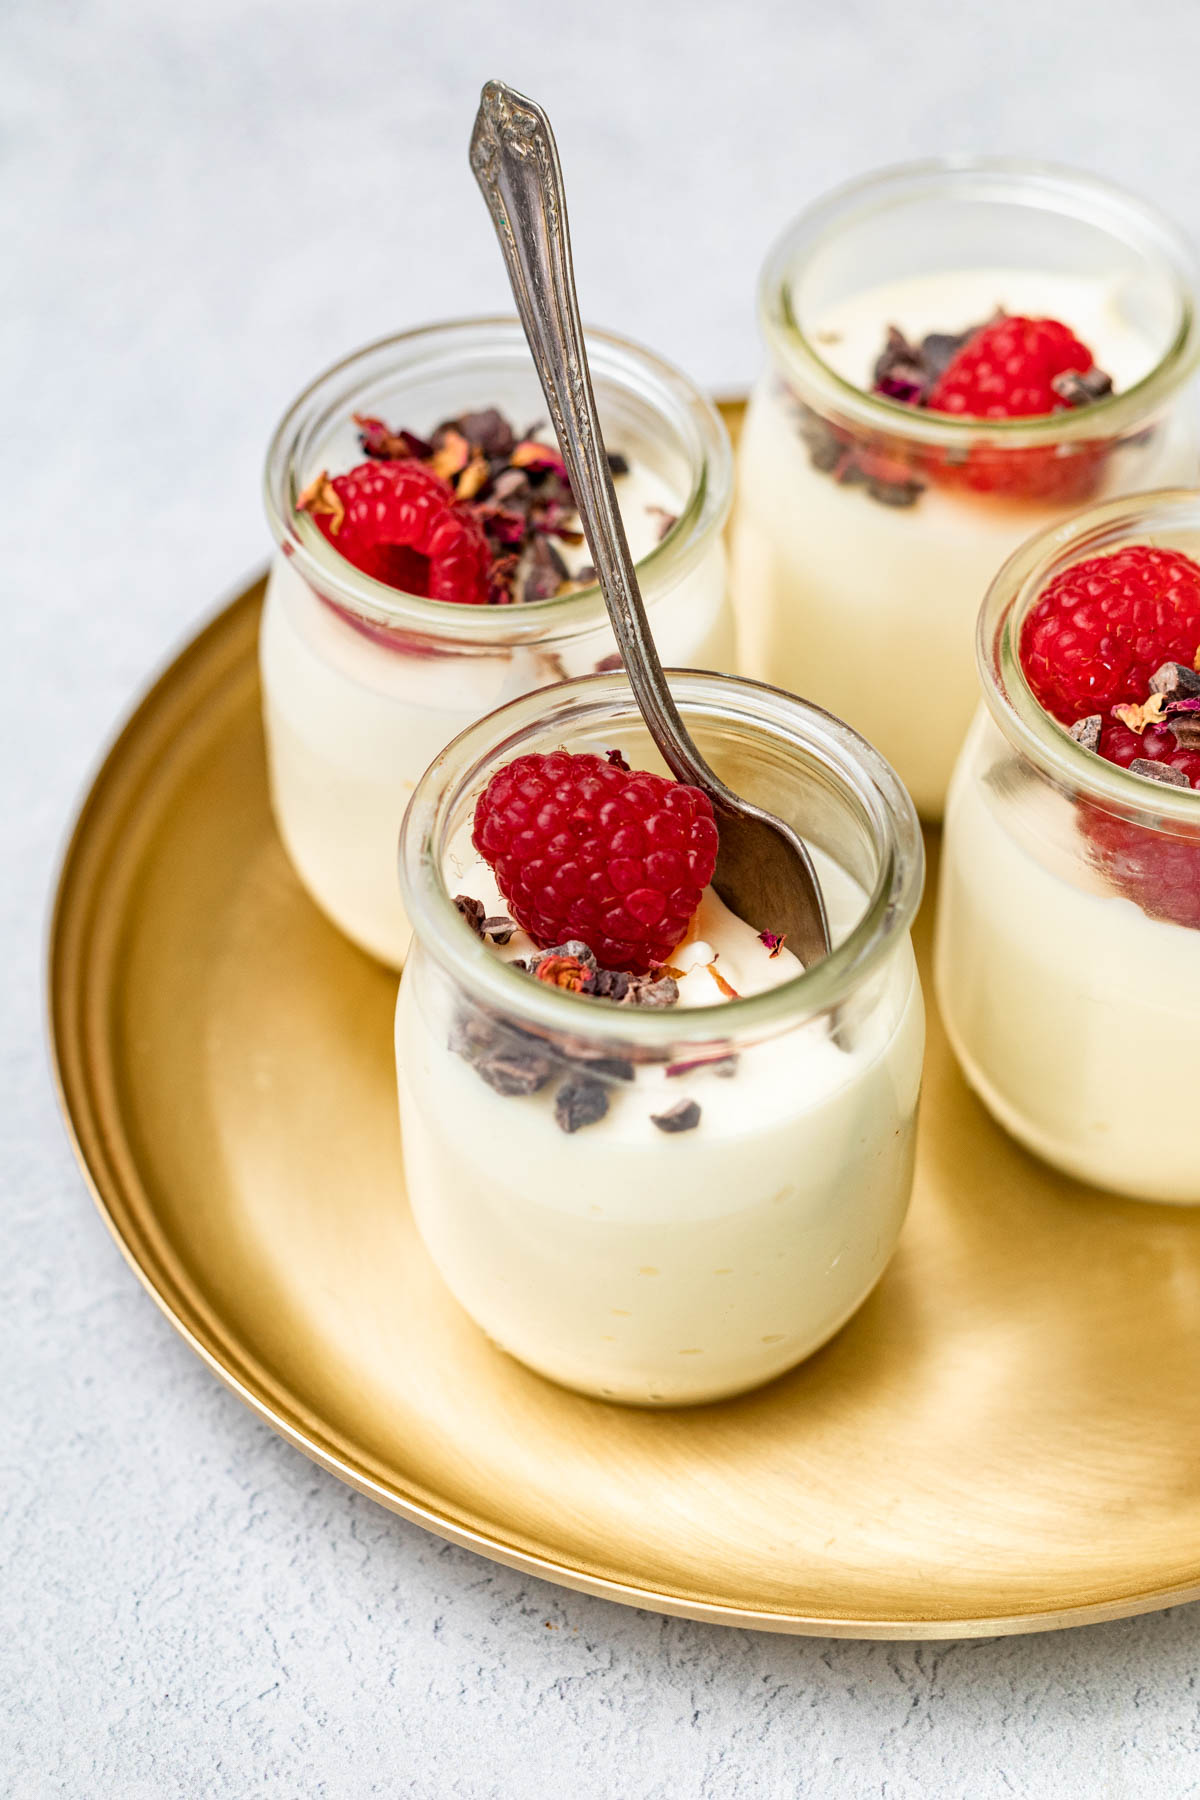 Jars of mousse garnished with cacao nibs, raspberries, and dried rose petals on top on a gold platter.